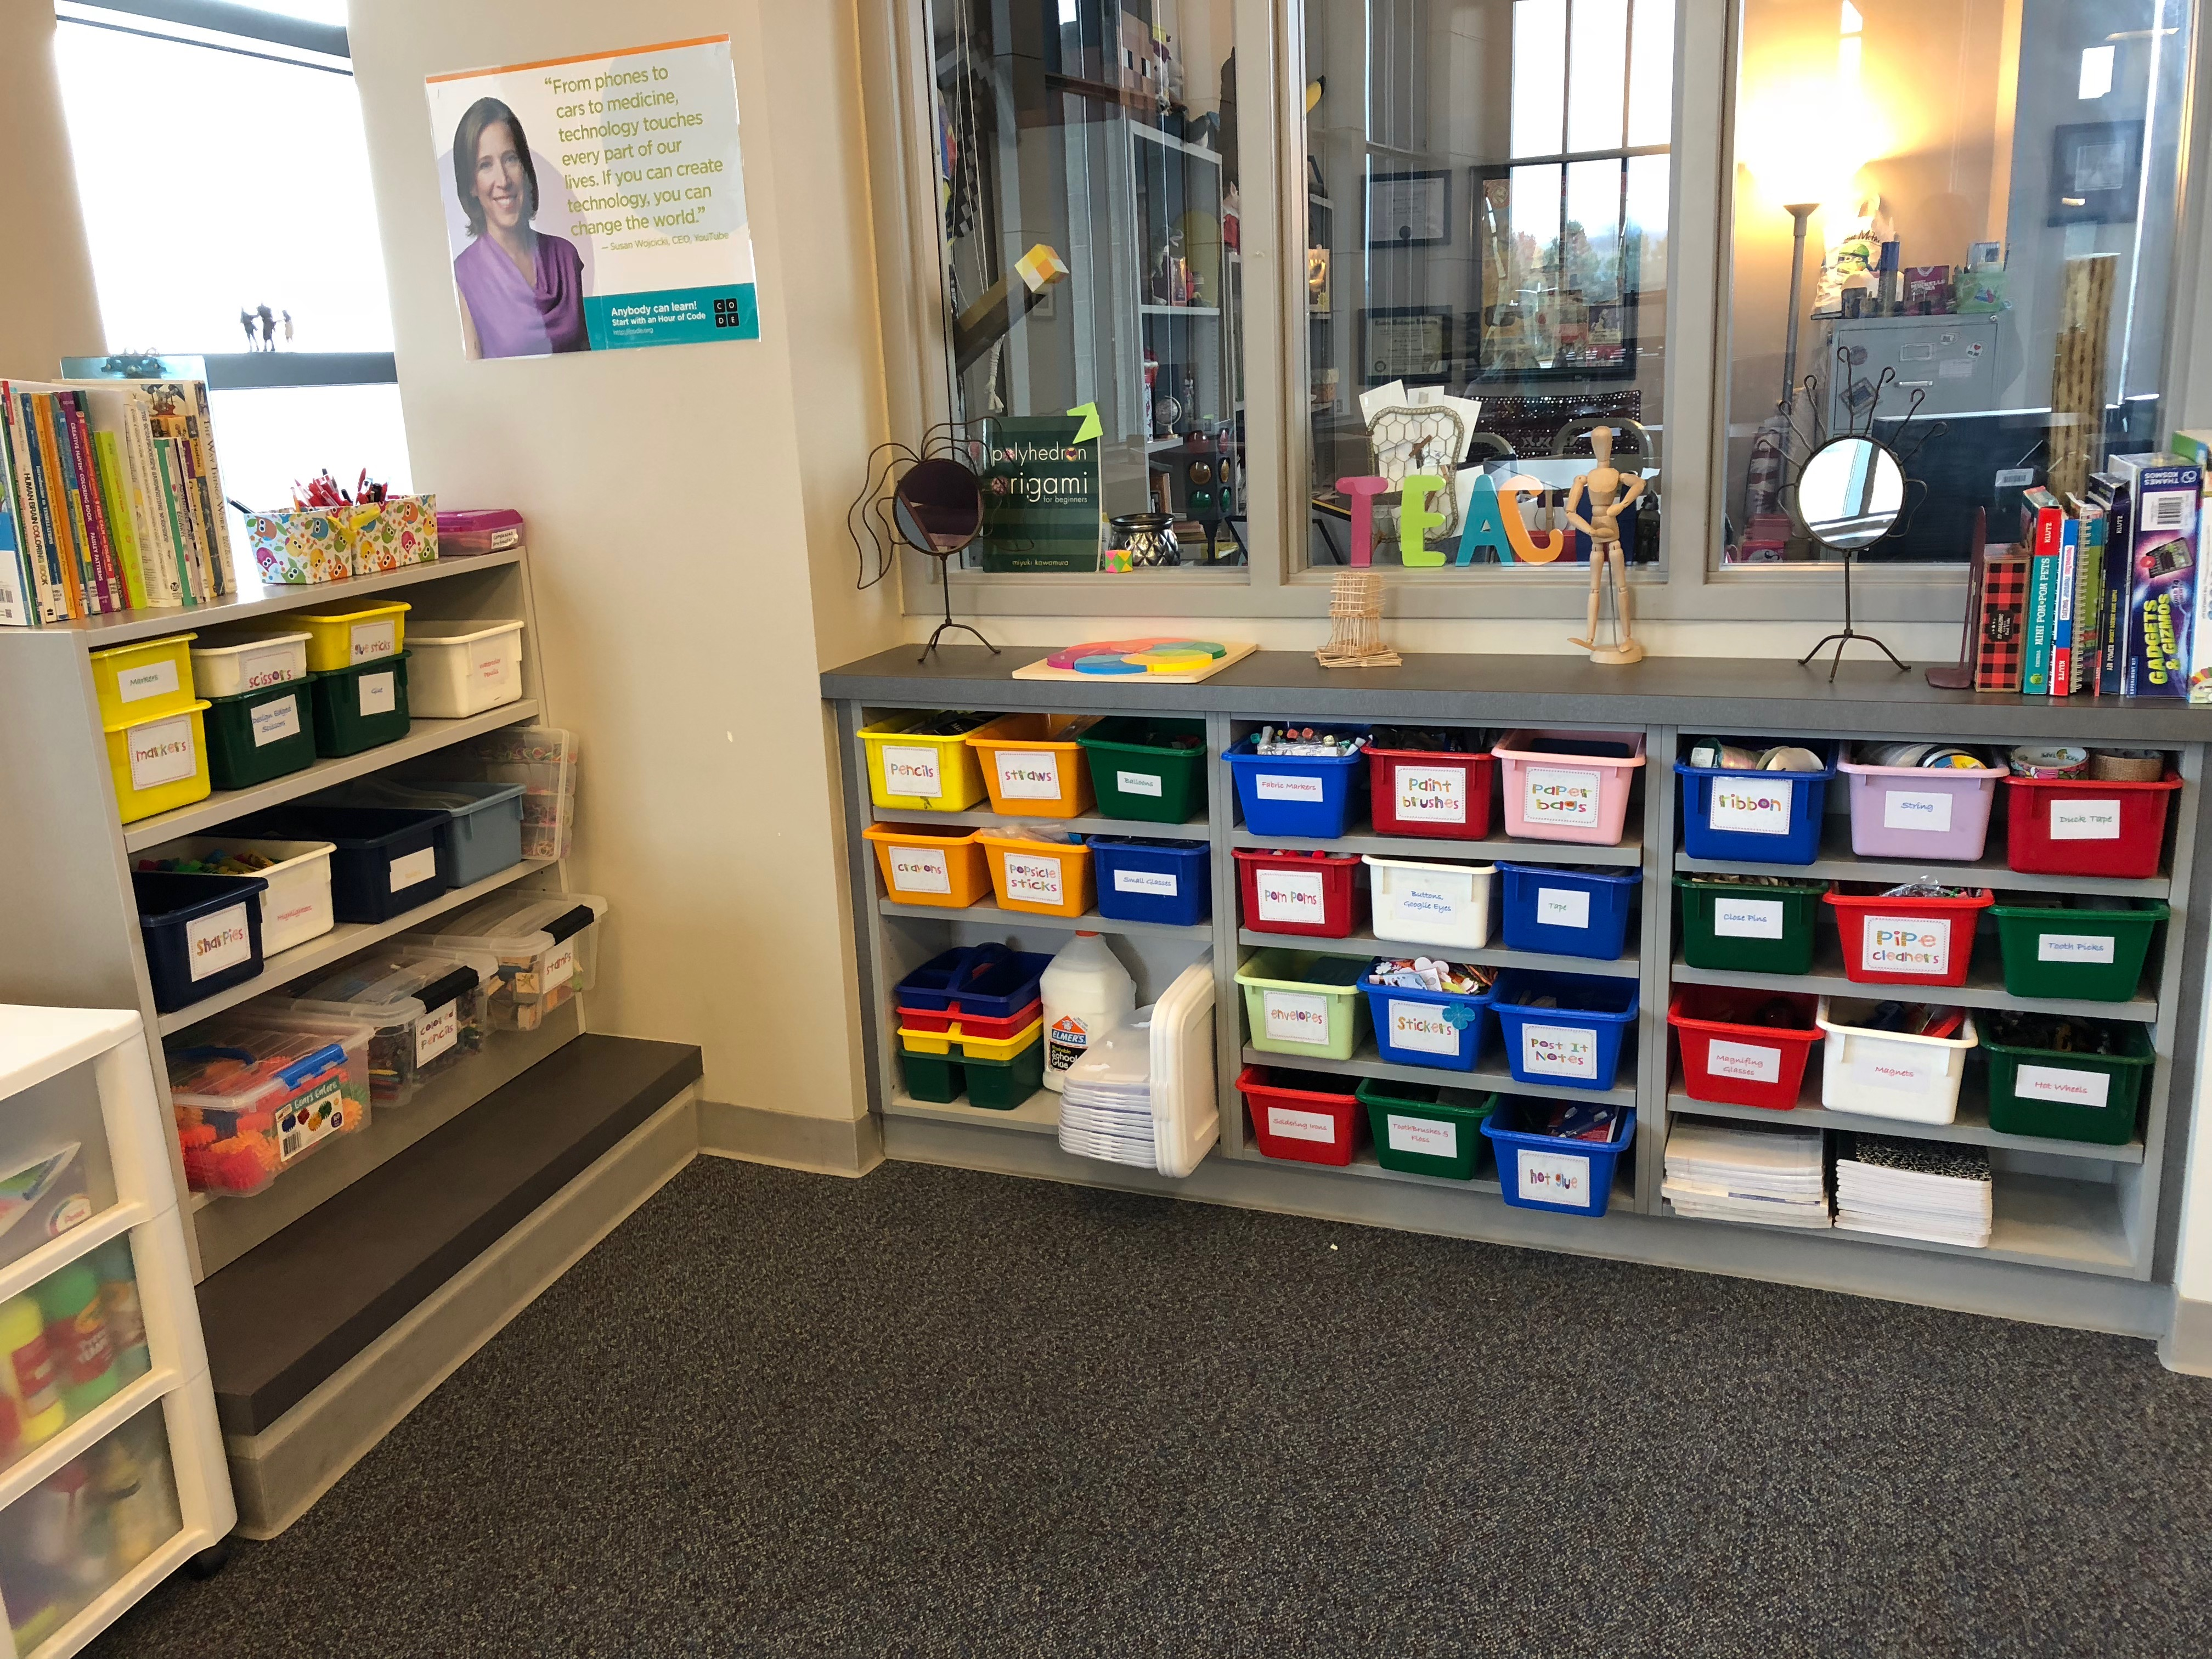 Maker supply nook close up - NCCE's Tech Savvy Teacher Blog